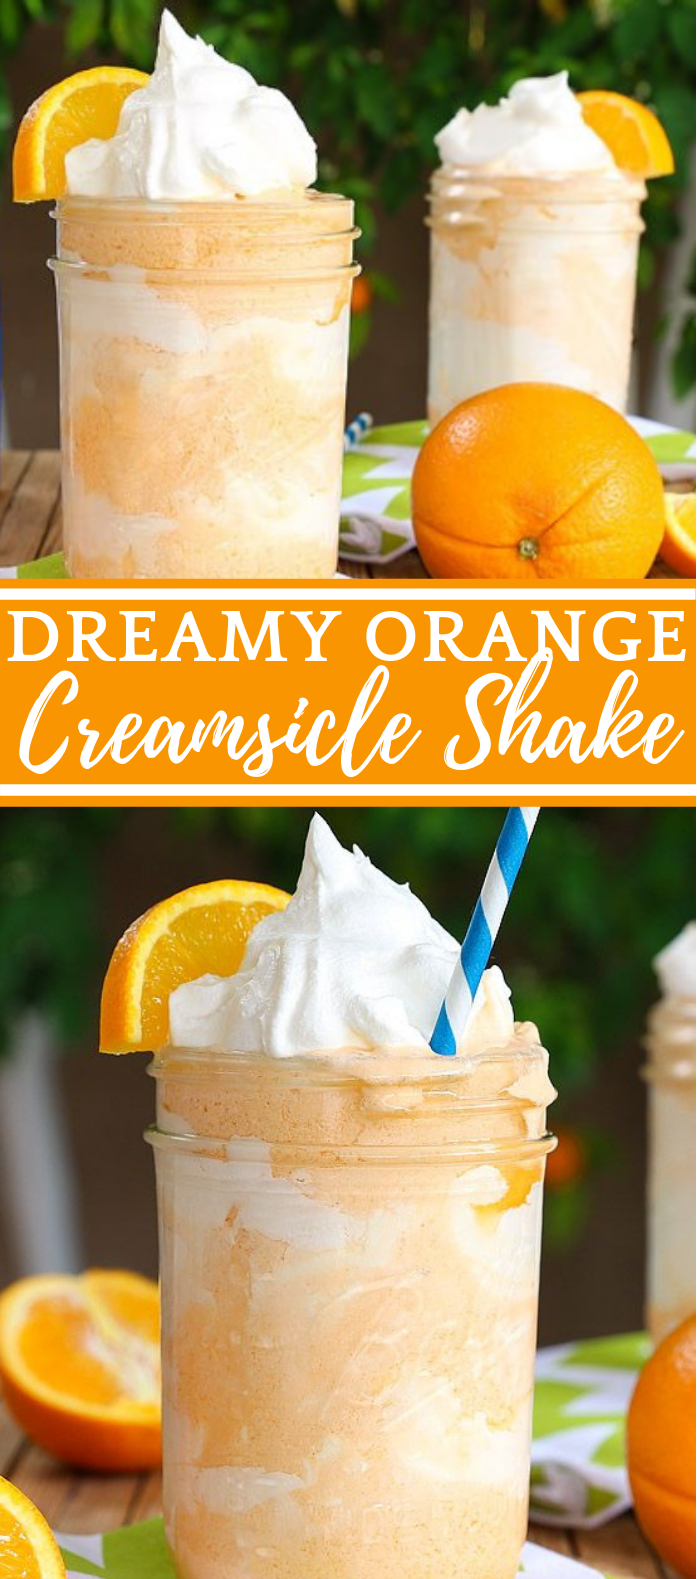 Dreamy Orange Creamsicle Shake #drink #smoothie